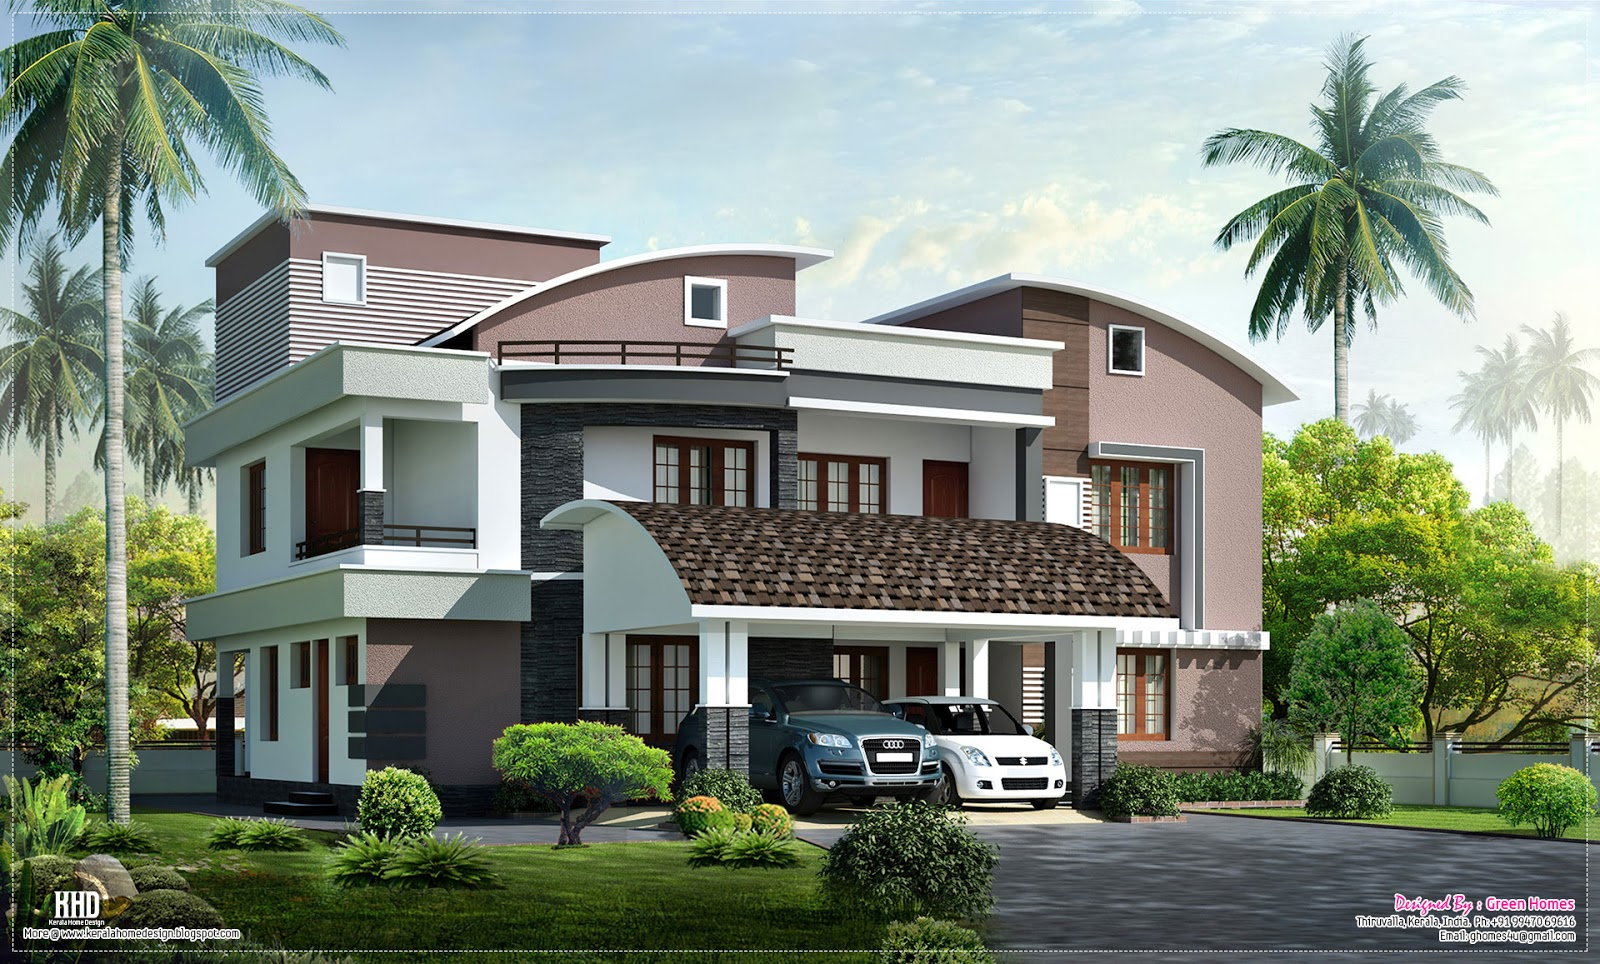 Modern Style Luxury Villa Exterior Design Home Kerala Plans